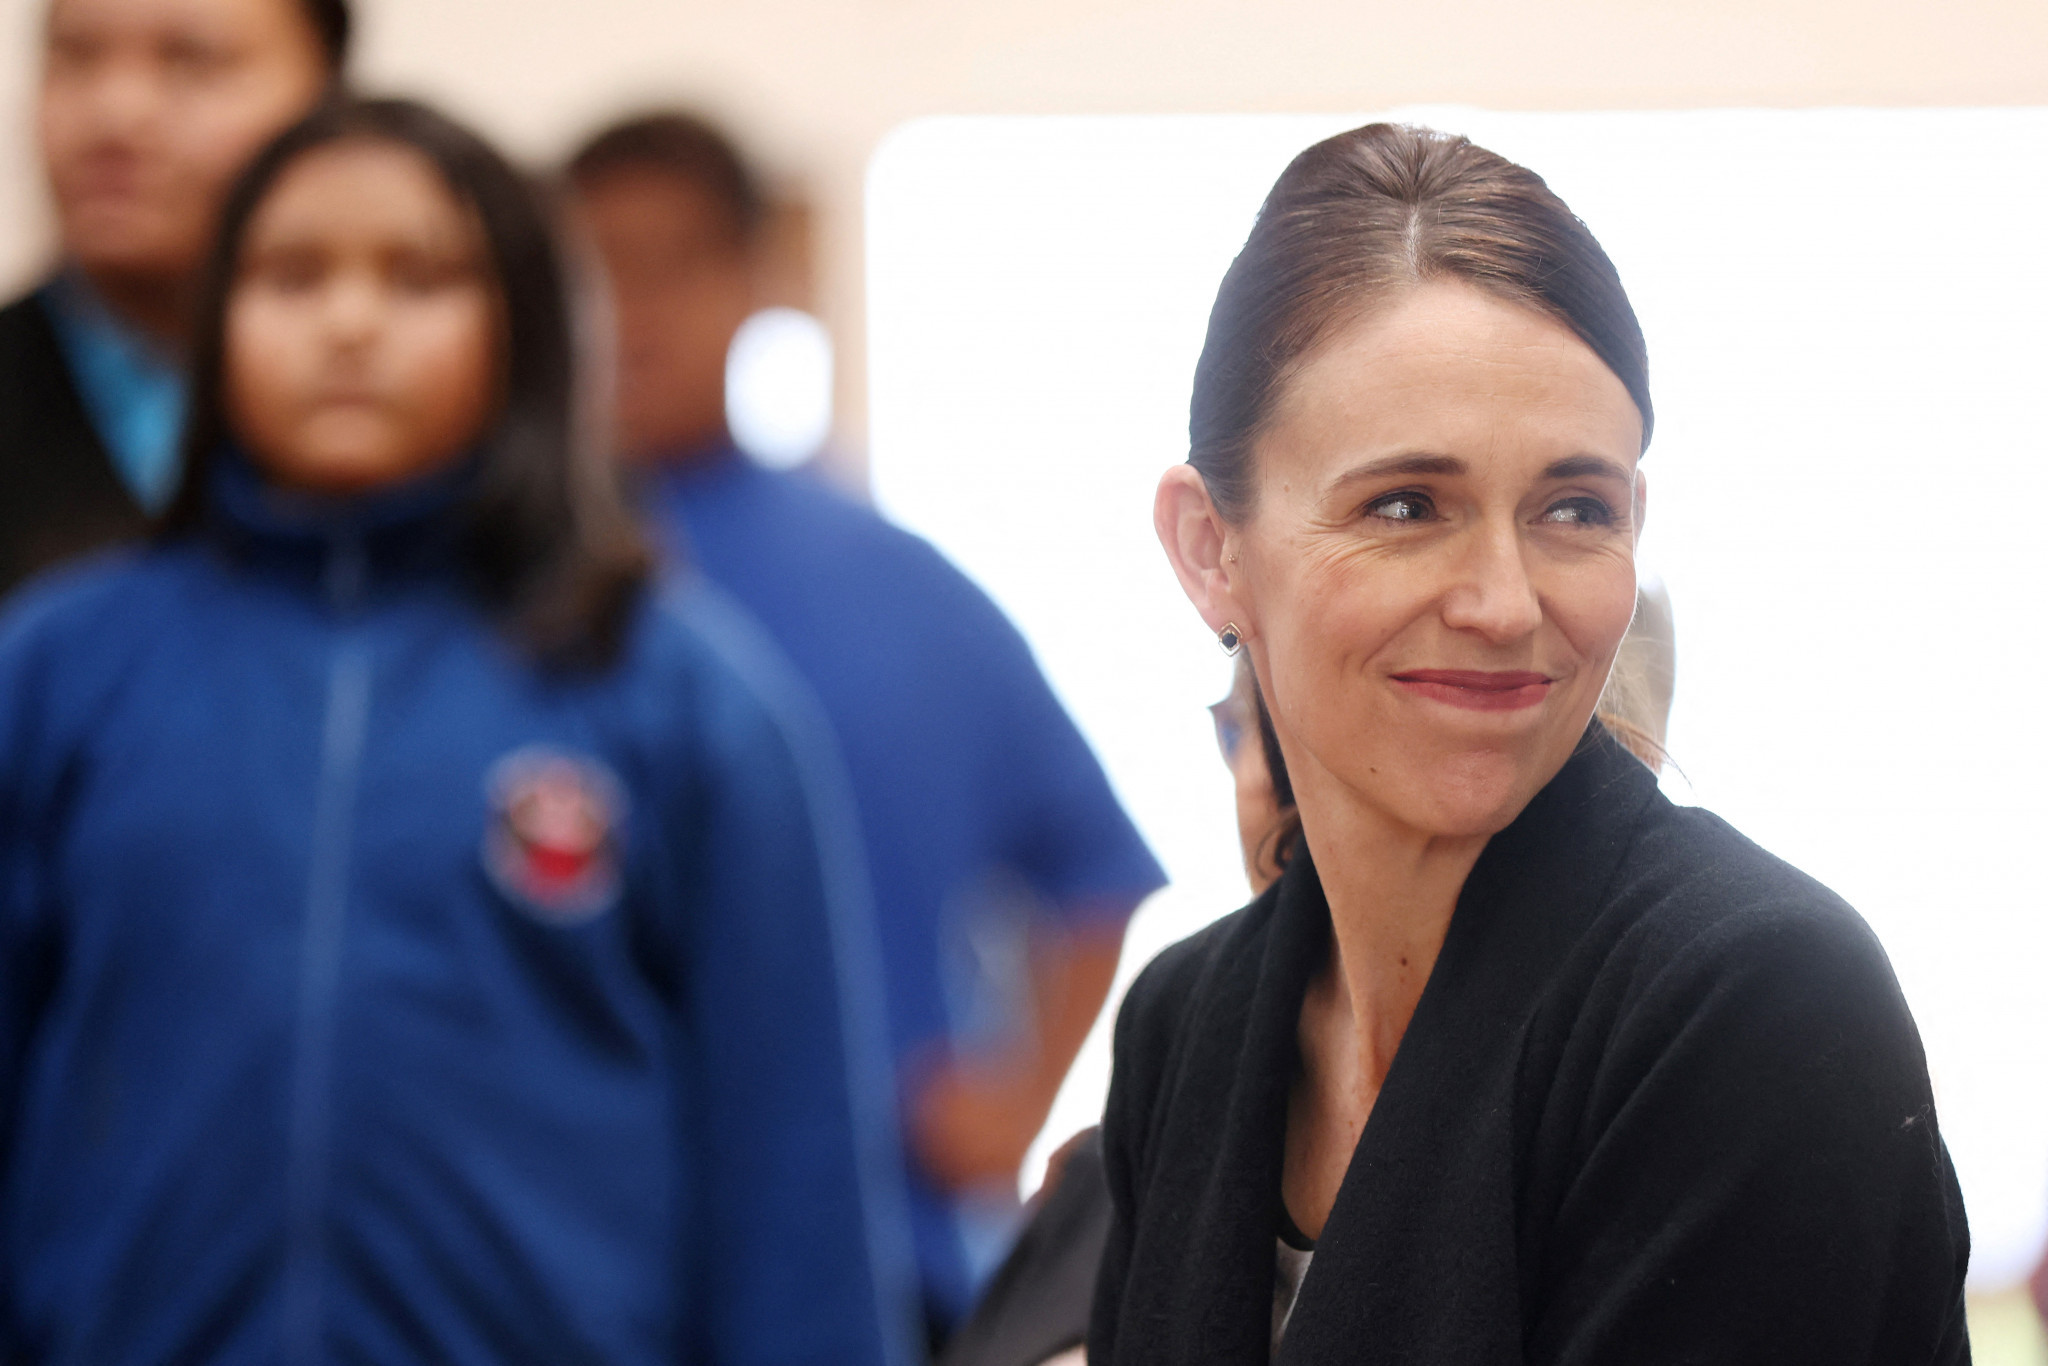 Jacinda Ardern has backed Laurel Hubbard's inclusion at the Tokyo 2020 Olympics ©Getty Images